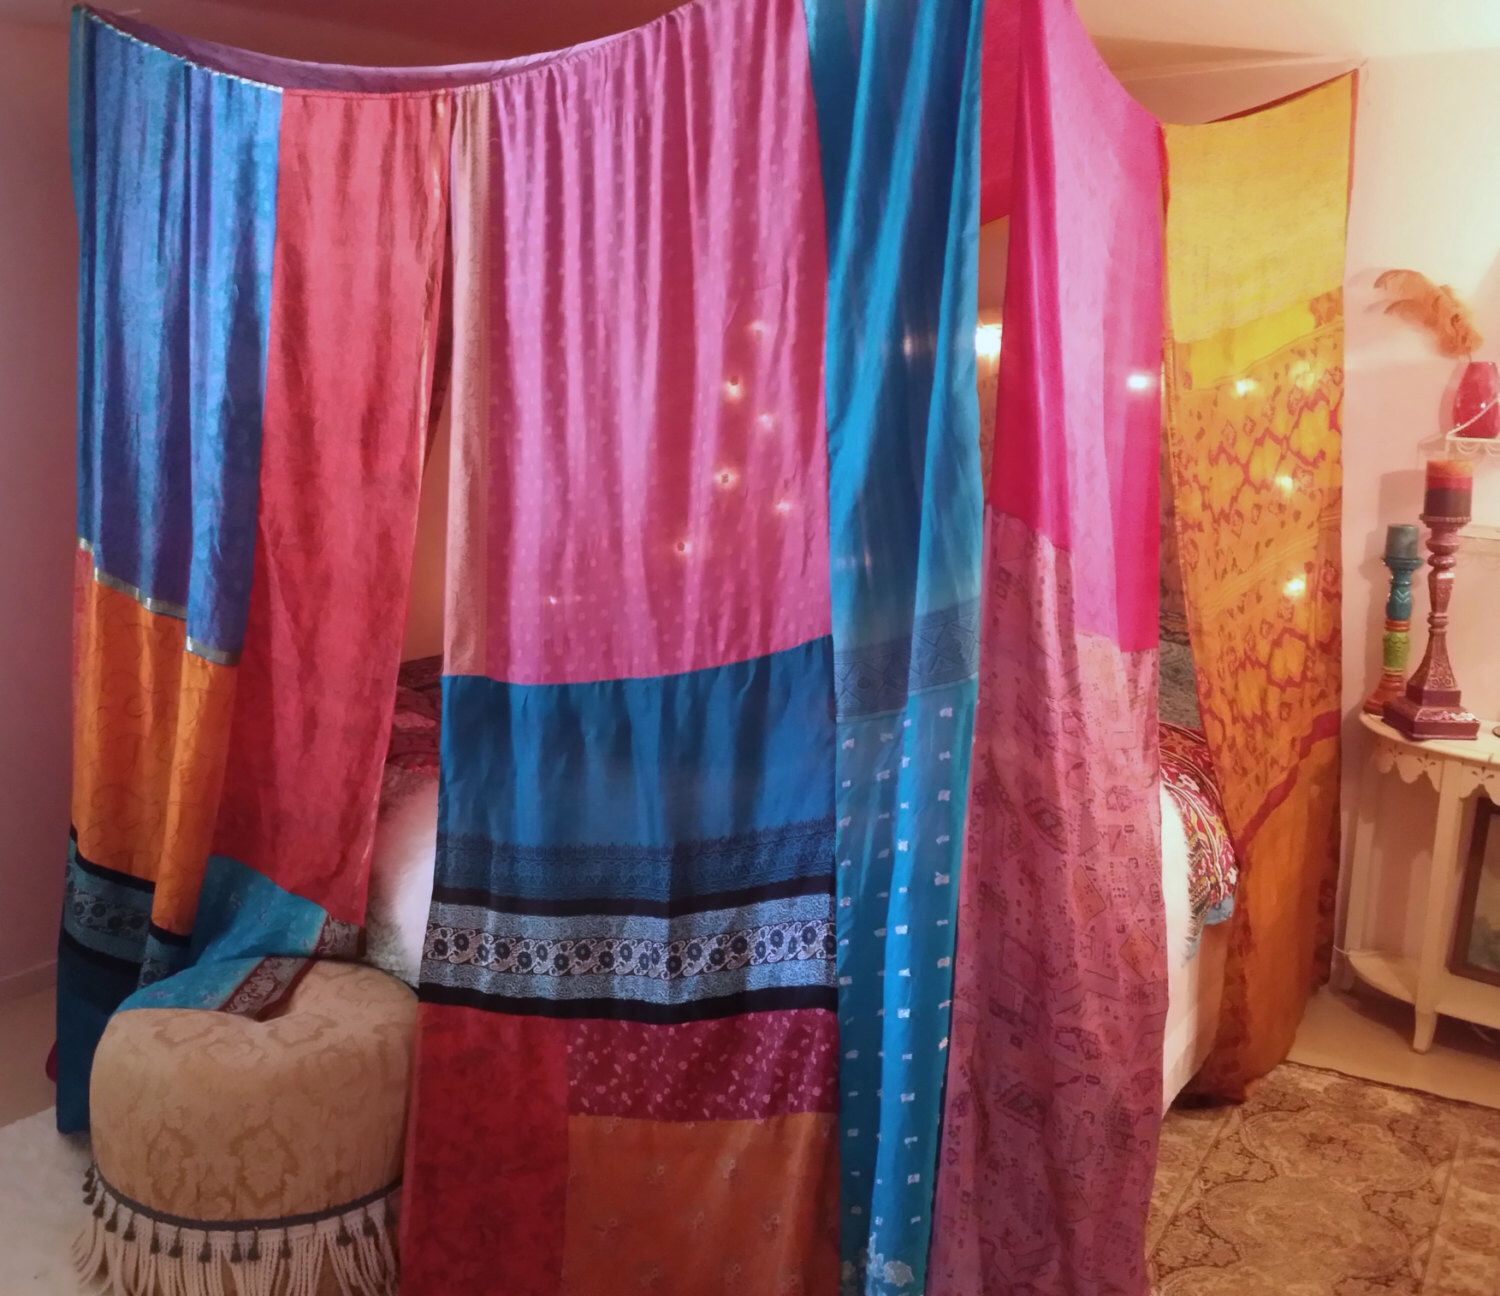 Bed canopy gypsy - Boho Bed Canopy Gypsy Hippie Hippy Hippiewild Patchwork India Sari Scarves Bedroom Decor Bohemian Chic By